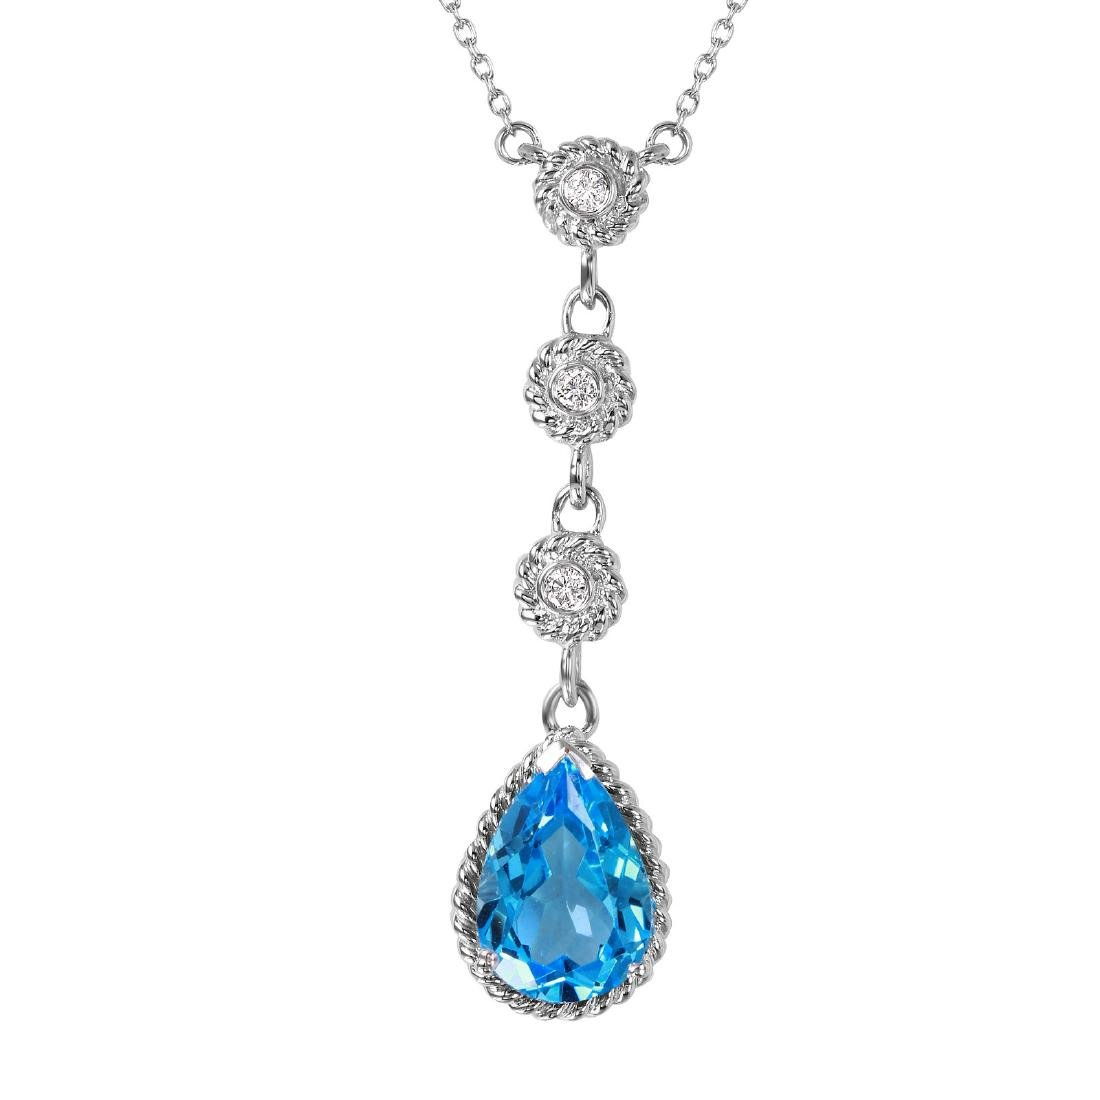 14KT White Gold 2.14ctw Topaz Diamond Necklace Length - 8